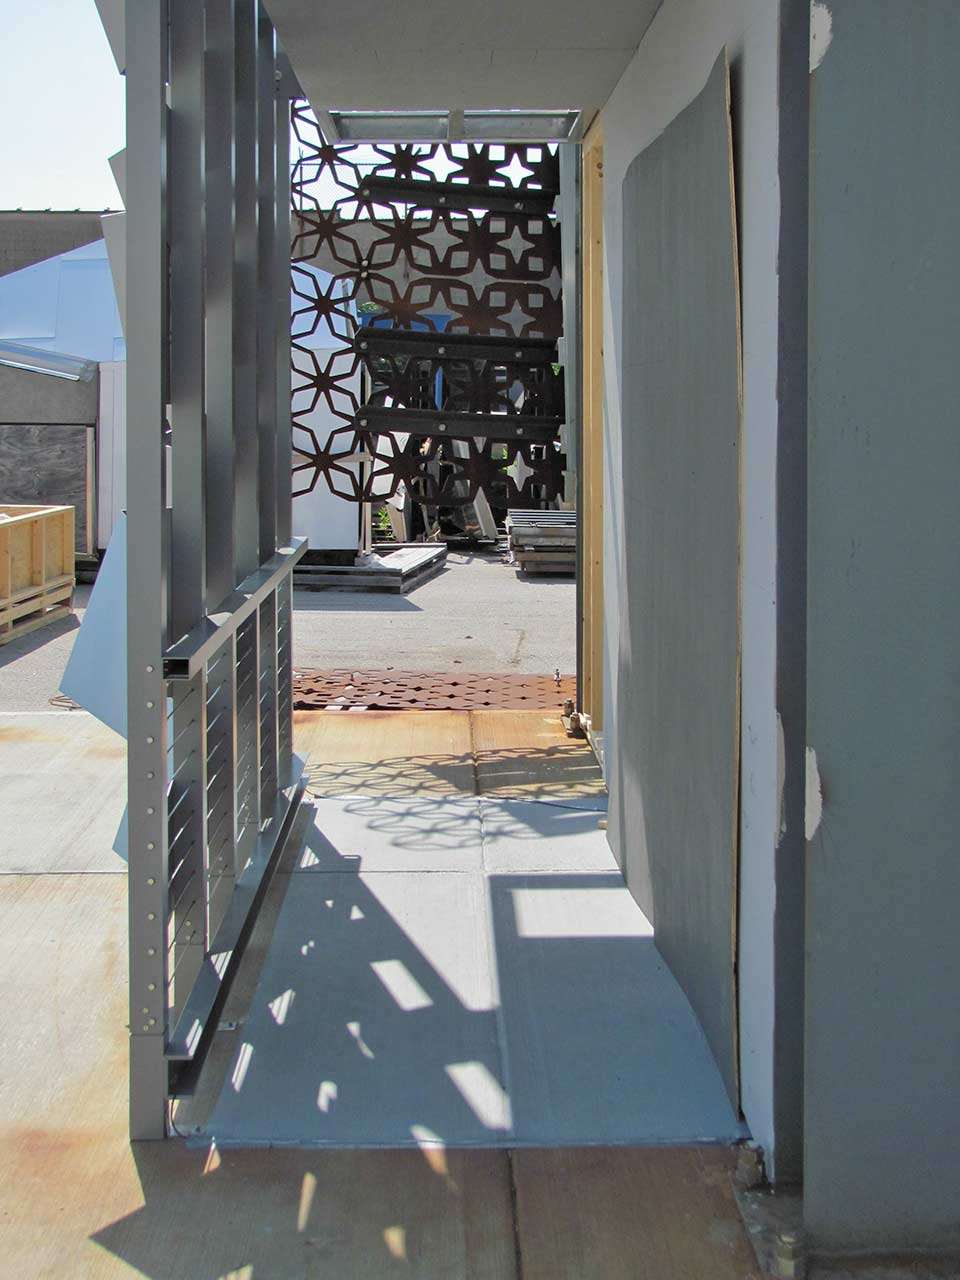 Photographs of the mockup, revealing the corridor which cuts through the facade.